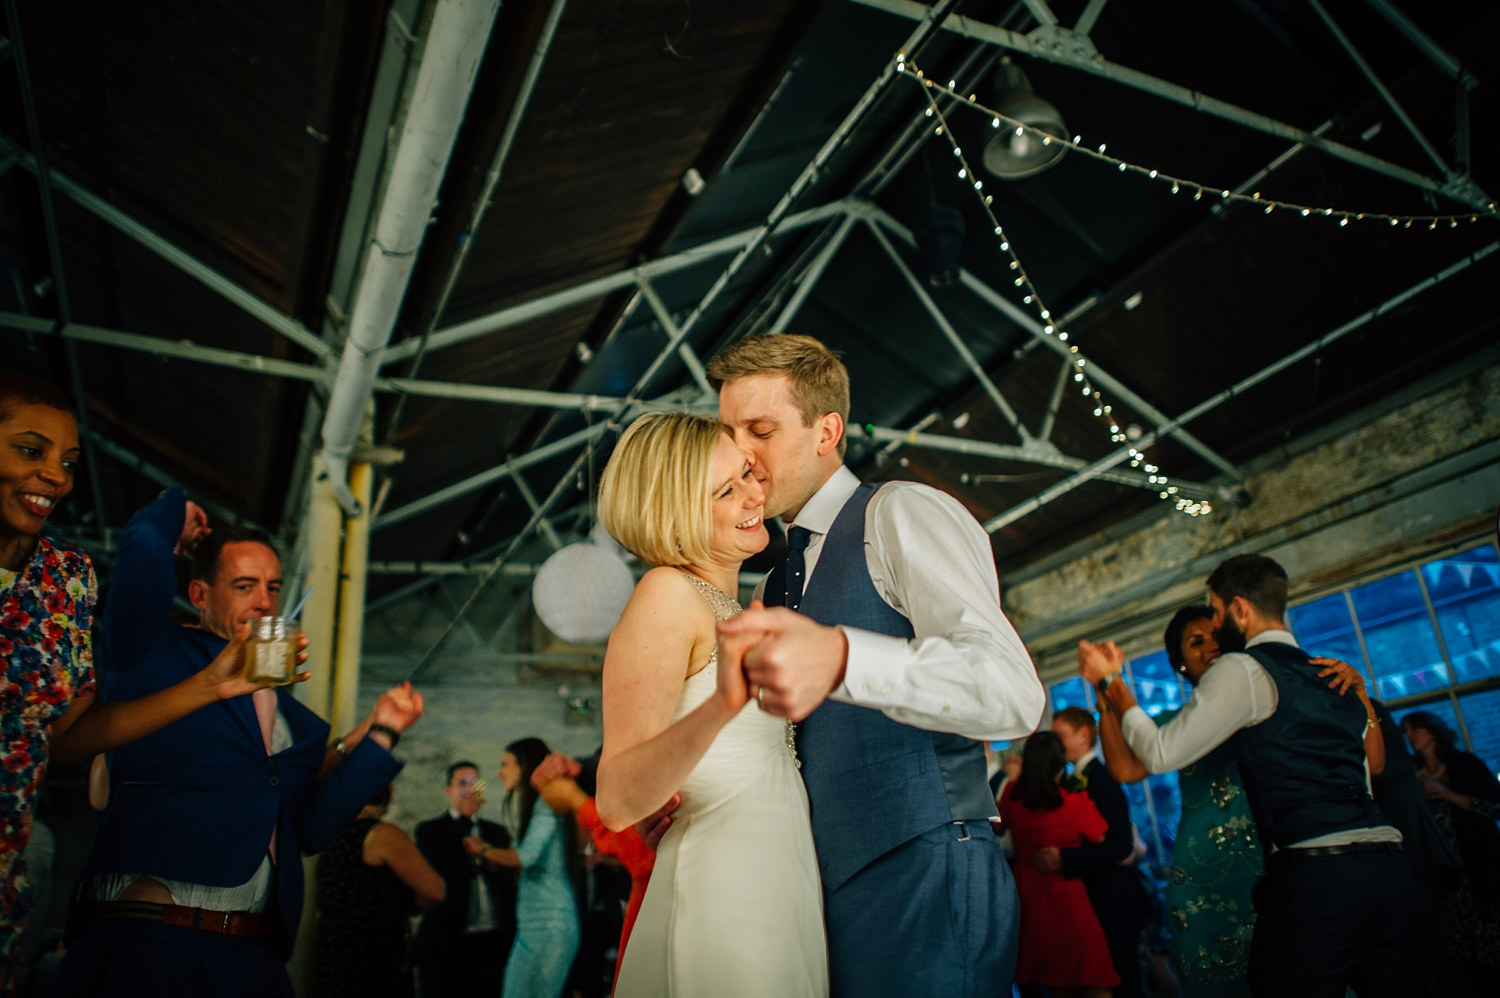 0217-lisa-devine-alternative-wedding-photography-london-hackney-dalston-london-photography-townhall-hotel.JPG